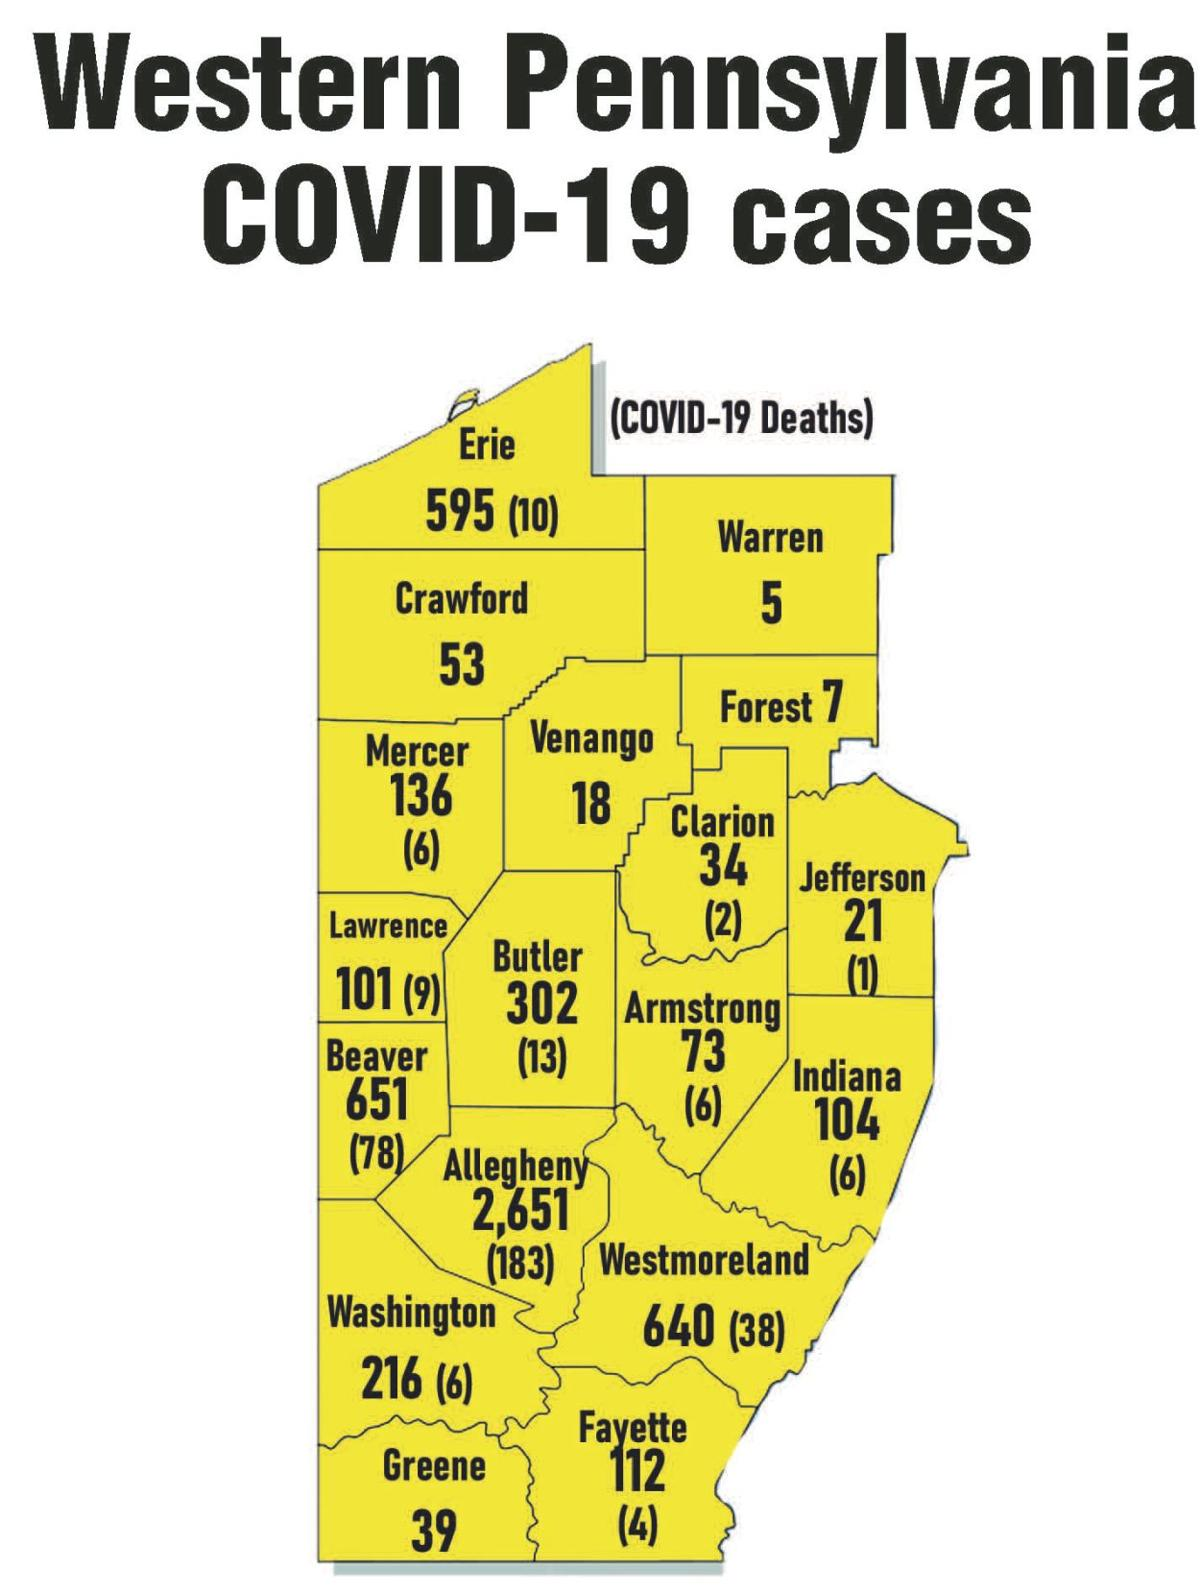 Clarion County's total virus cases cut by one